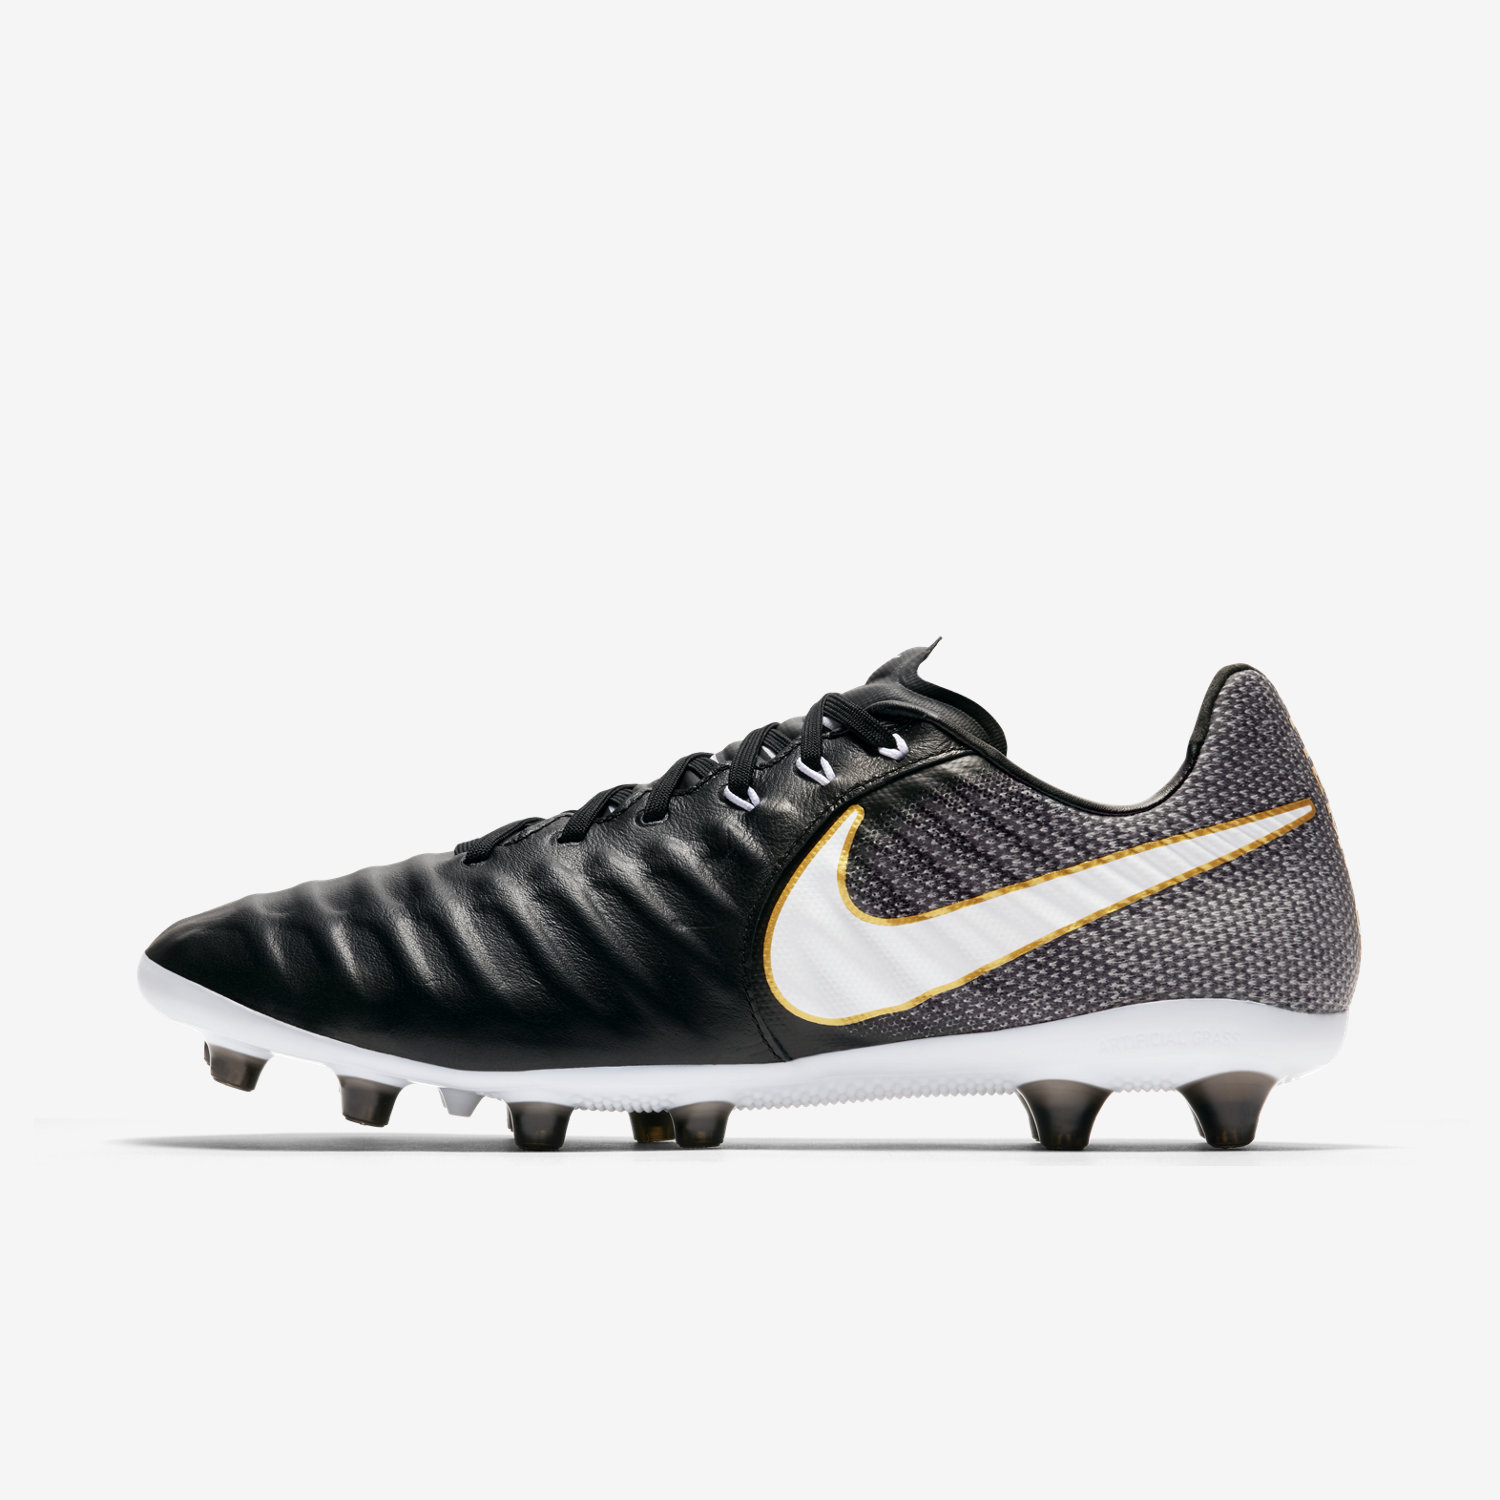 nike football boots. next nike football boots